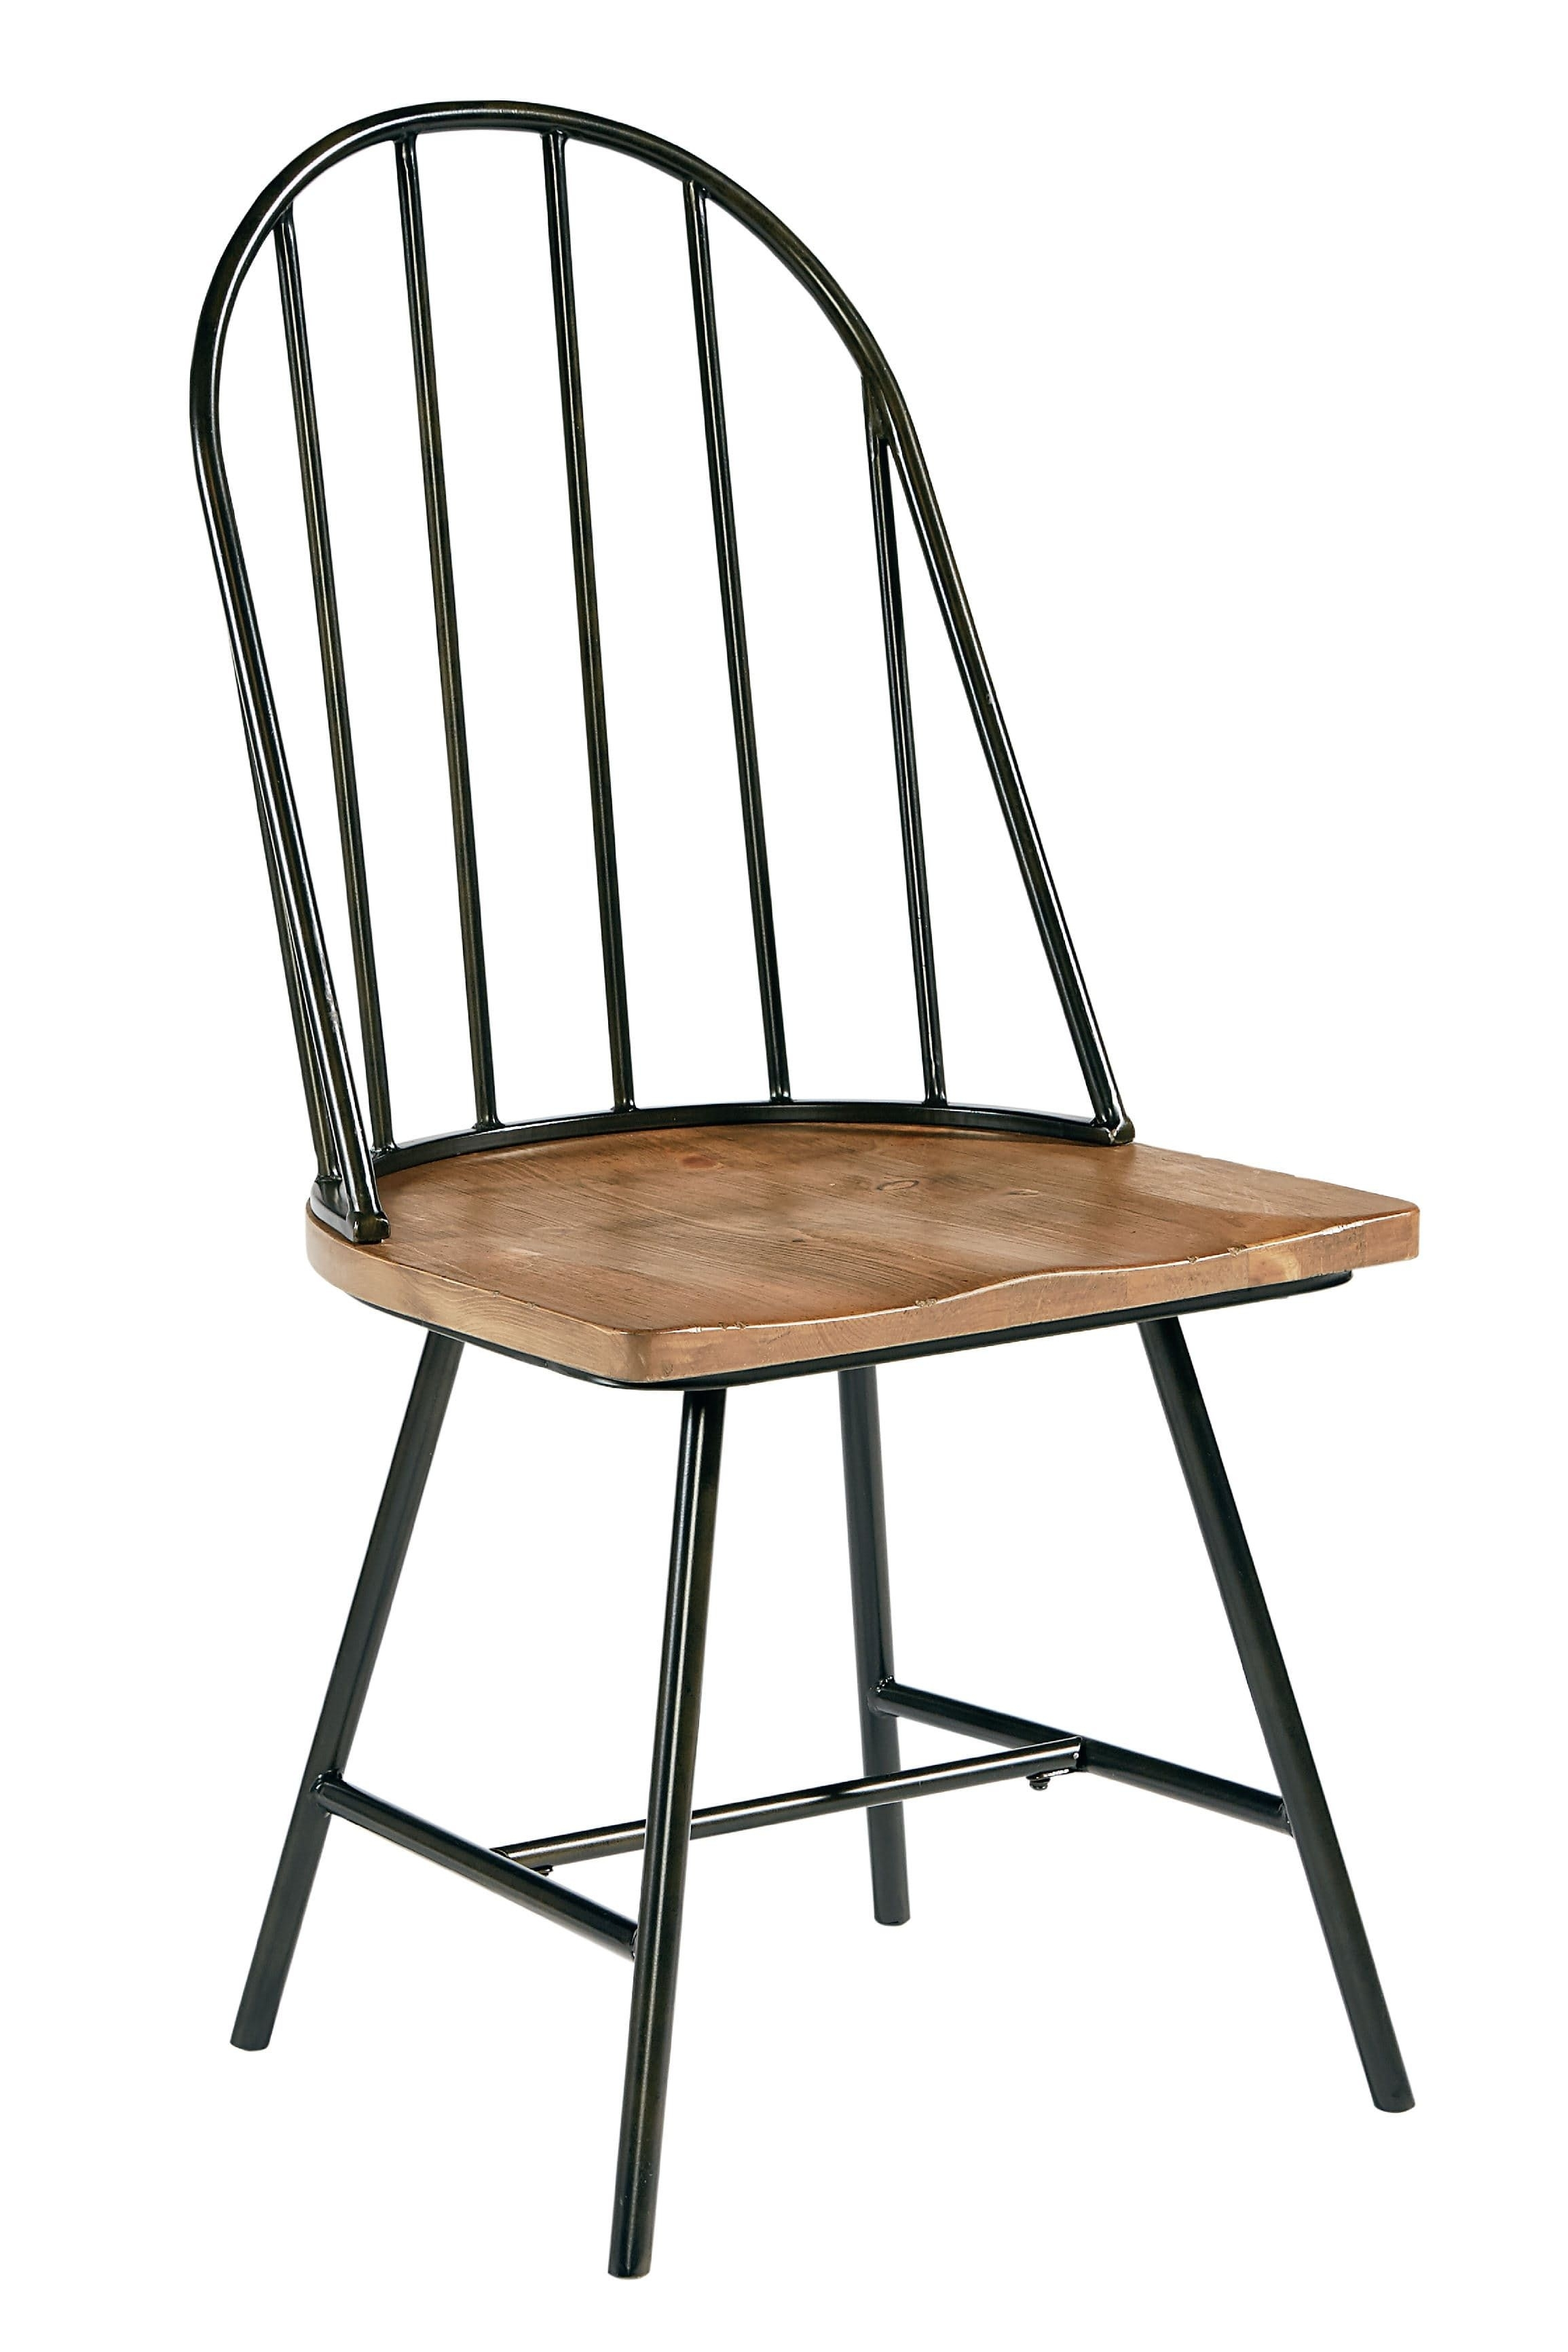 2018 Magnolia Home – Windsor Metal And Wood Hoop Chair St: (View 8 of 20)